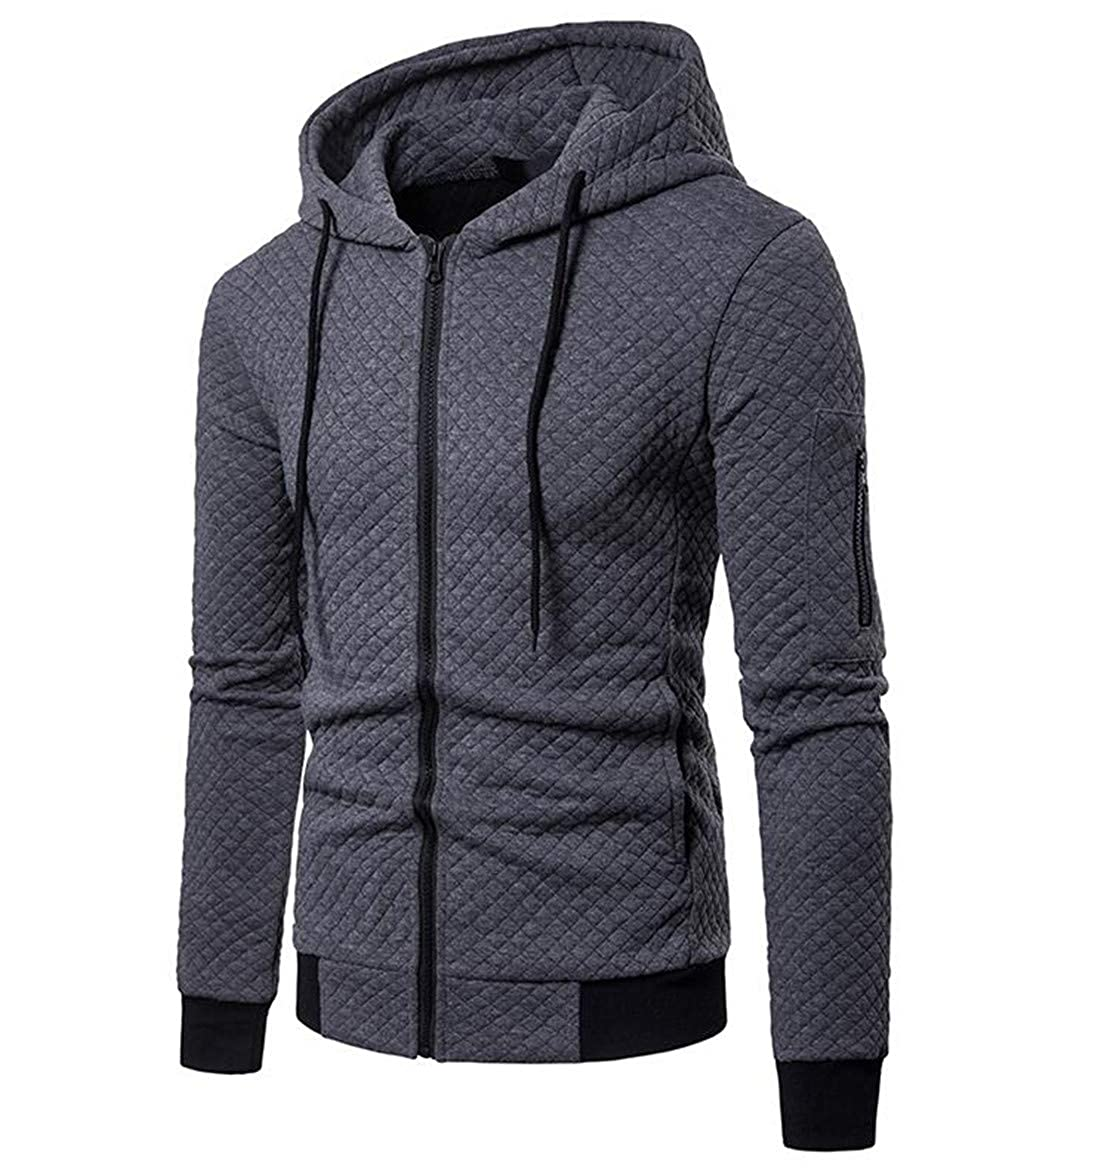 JXG Men Premium Long Sleeve Zipper Front Hooded Cardigan Jacket